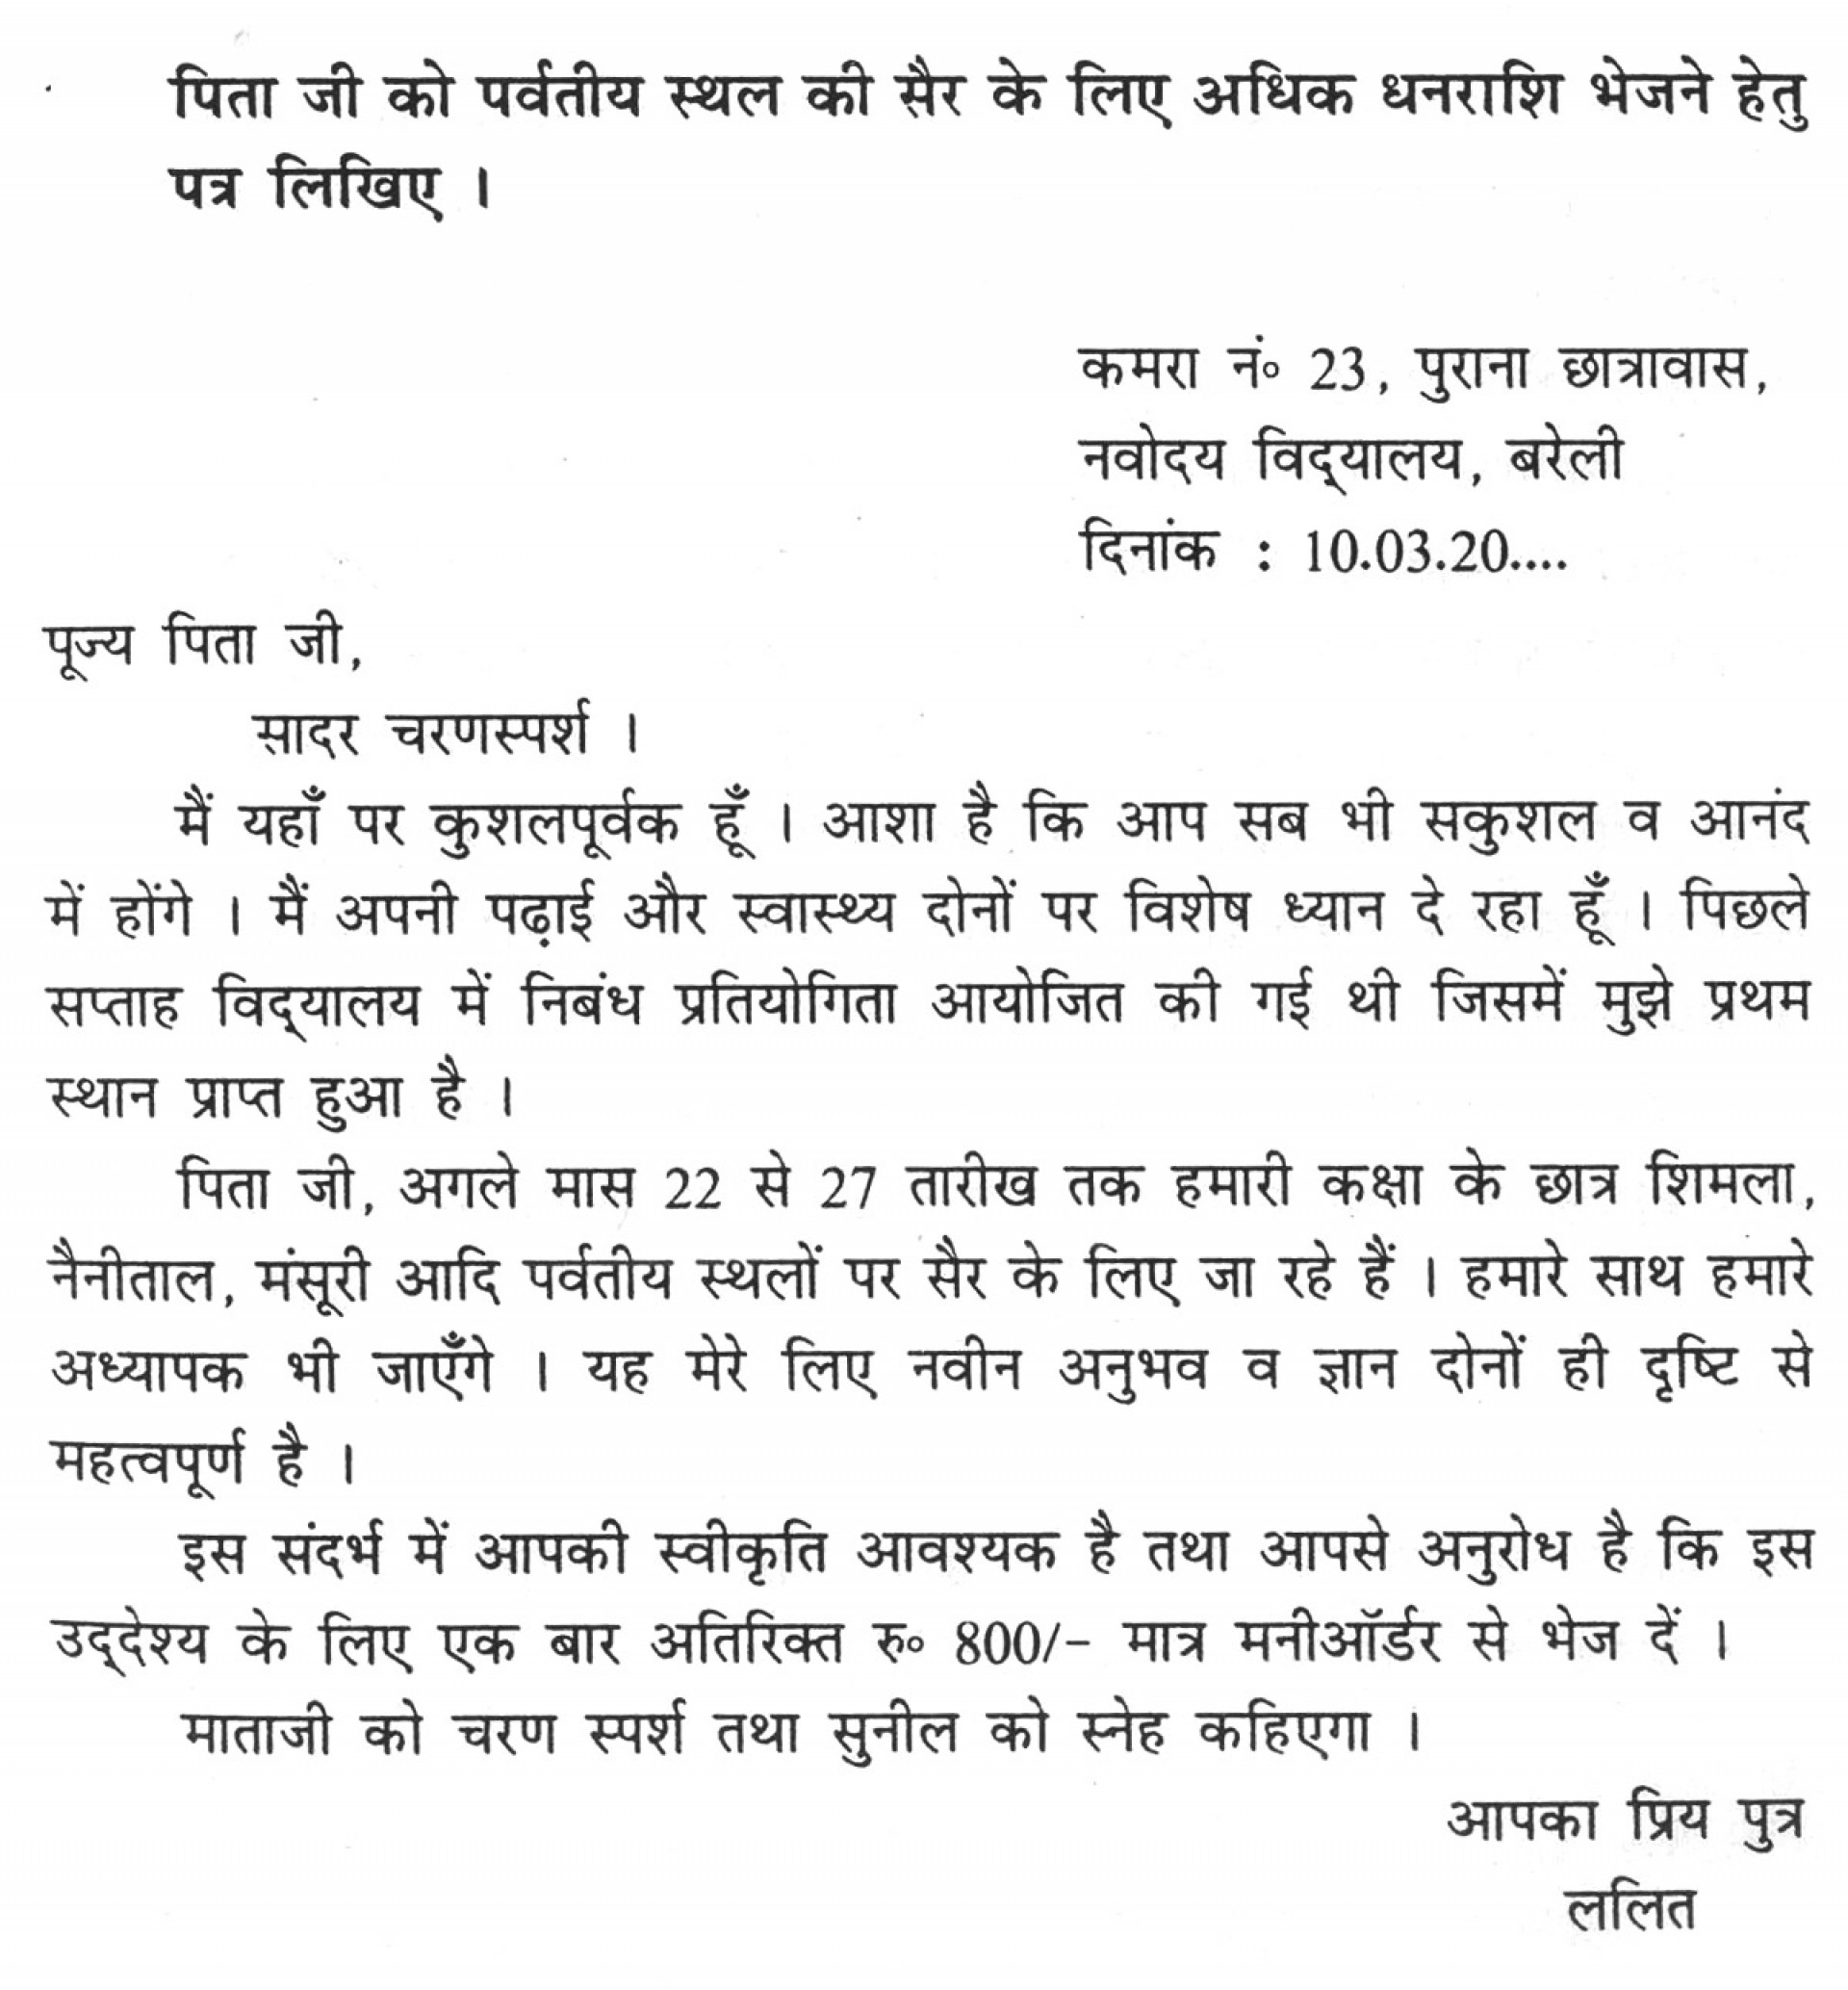 015 My Father Essay Writing On Pet Dog For Class 89 T Is Role Model In Marathi English Hero Simple Language Unusual Parents Superhero 1920